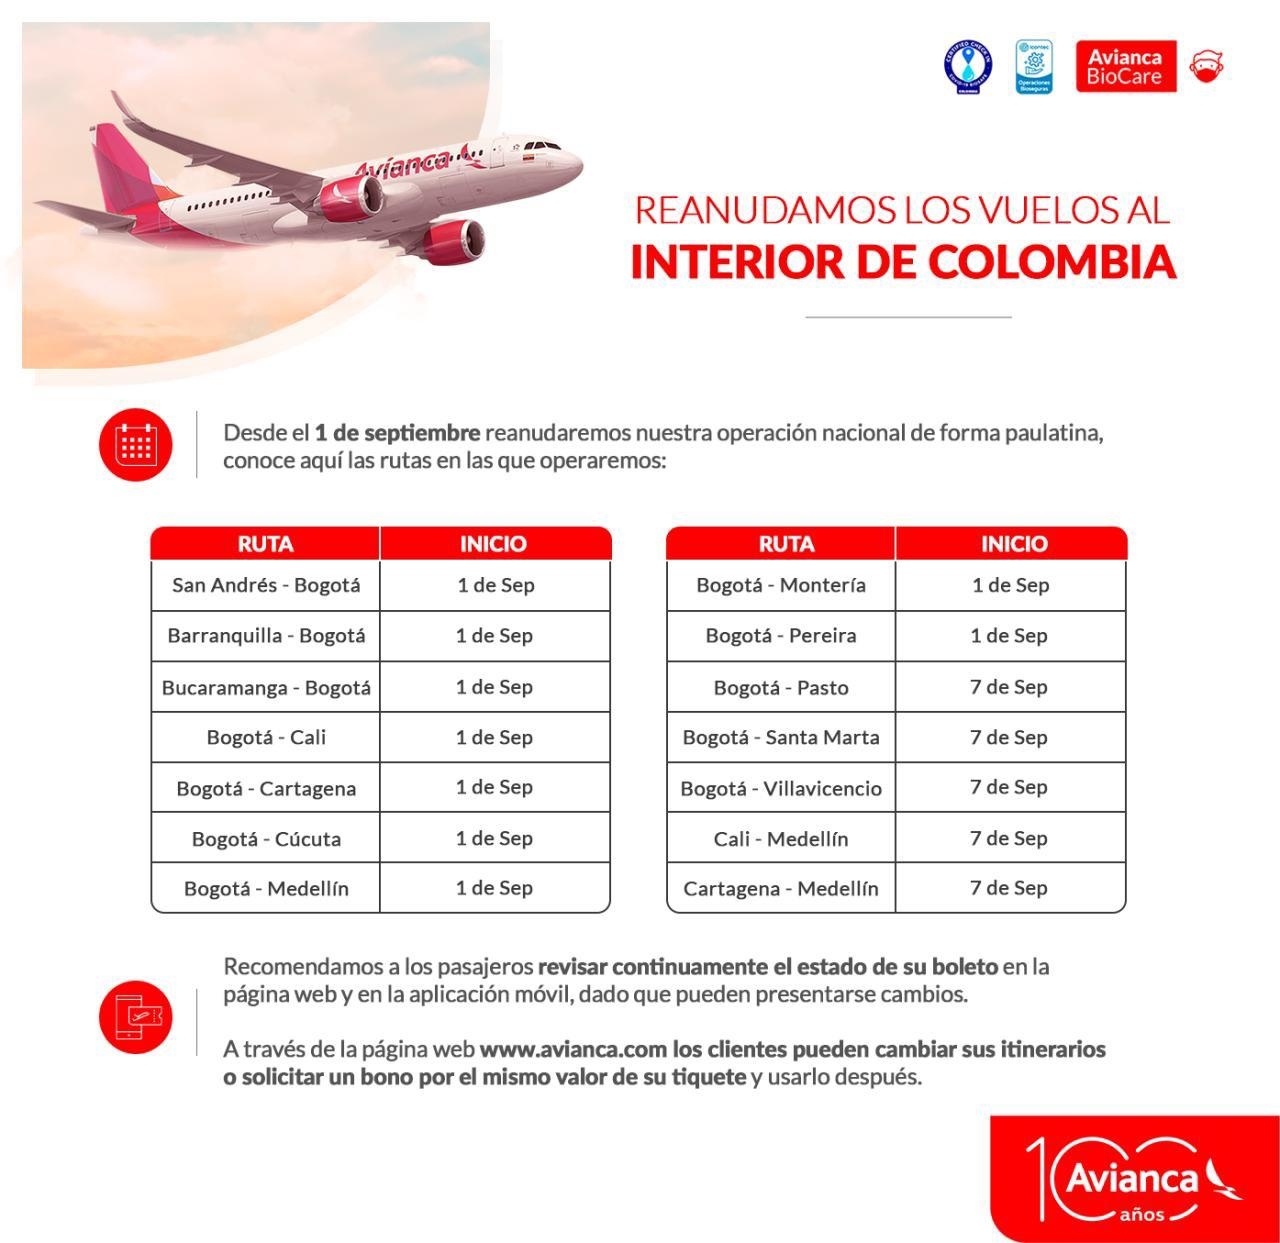 Avianca hervat nationale vluchten vanaf 1 september